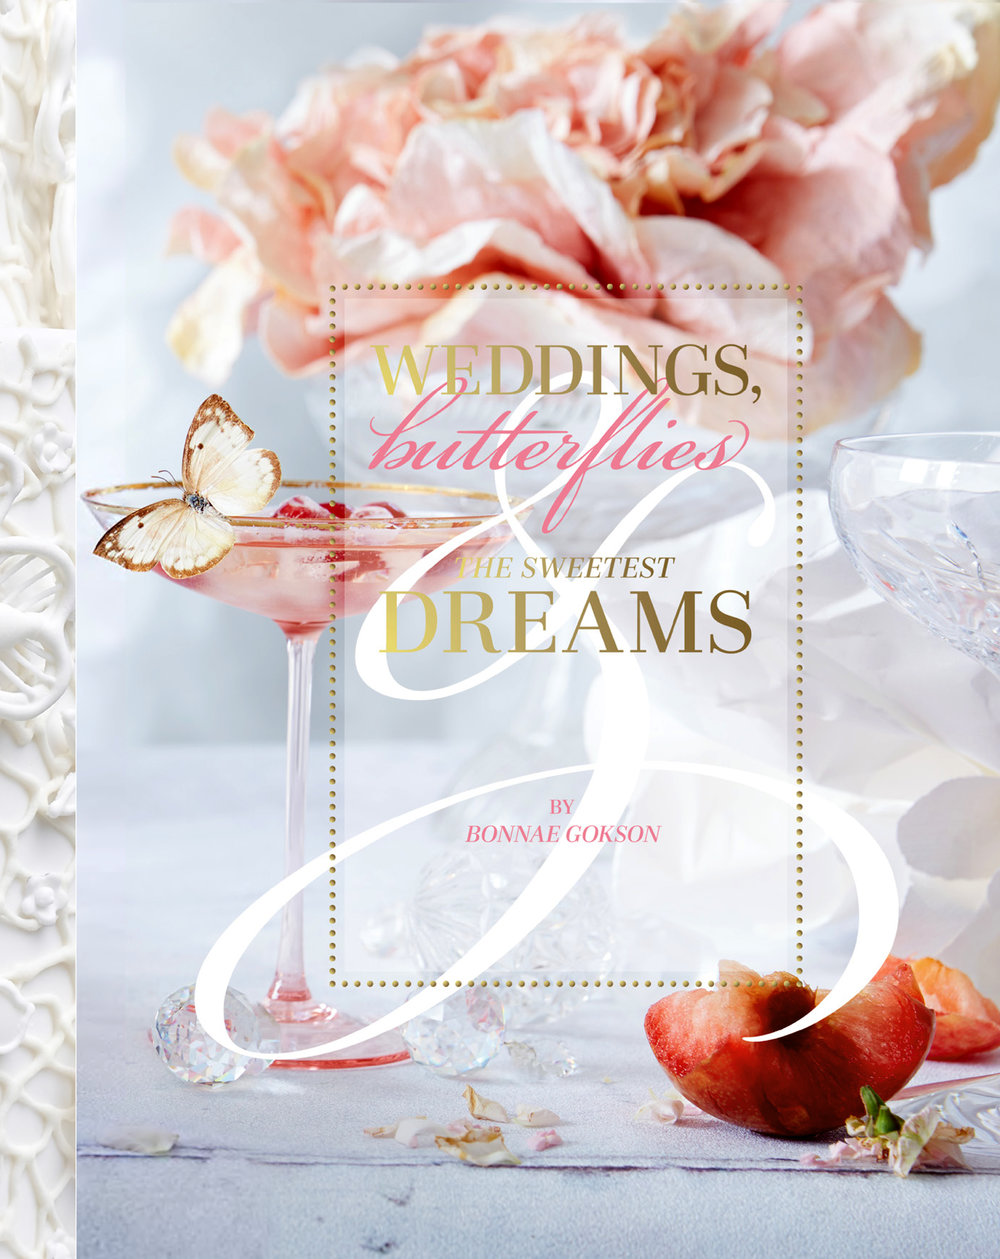 Weddings, Butterflies & The Sweetest Dreams Cover.jpg